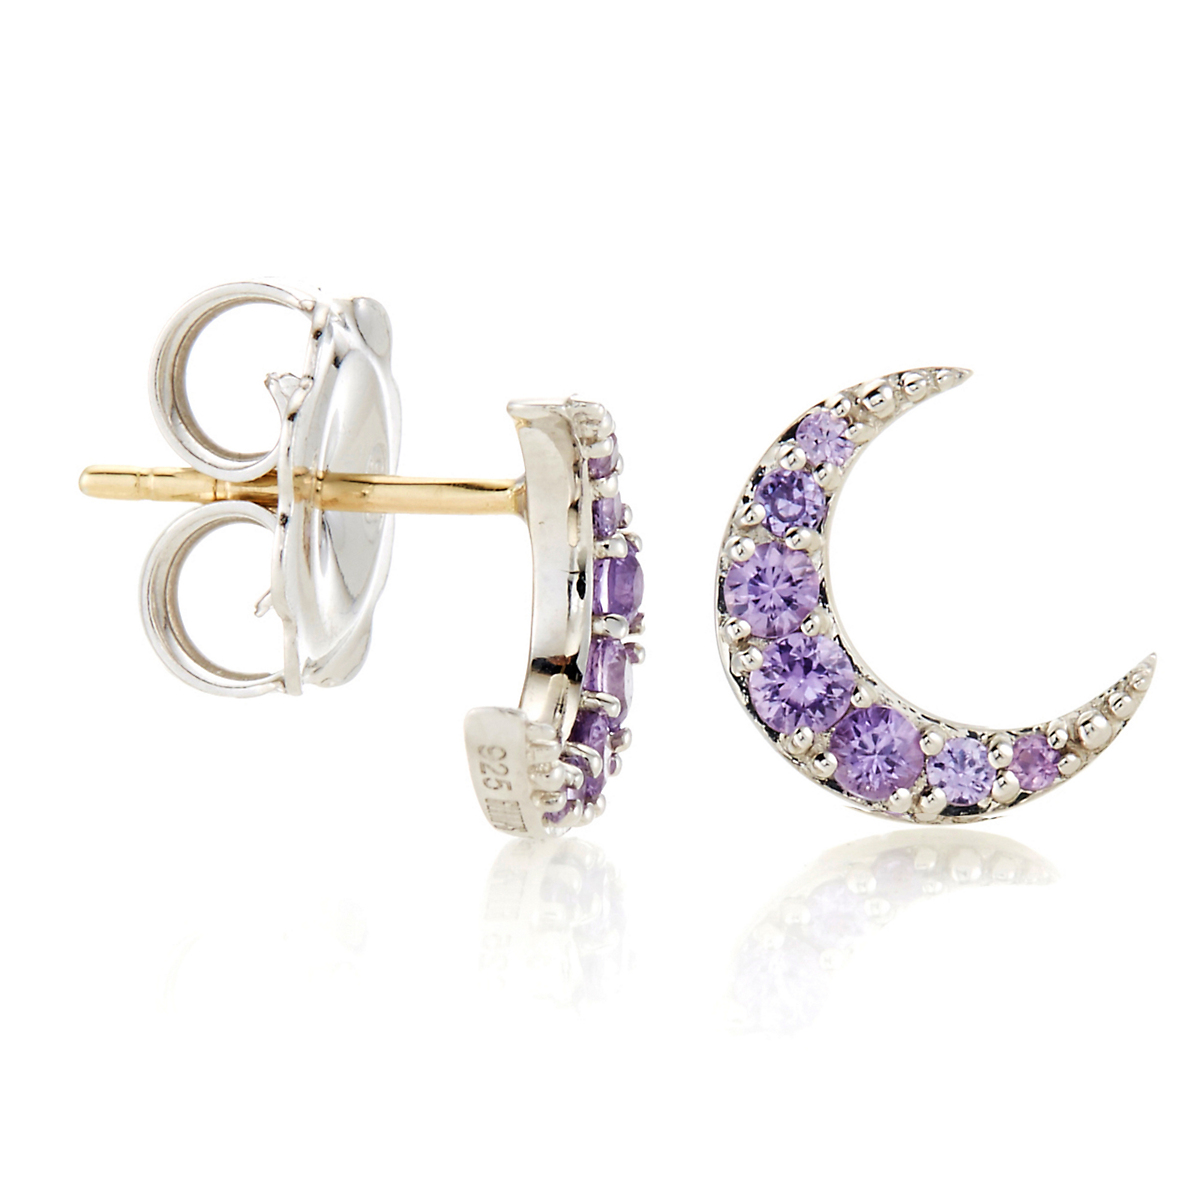 Gump's Violet Sapphire Crescent Stud Earrings